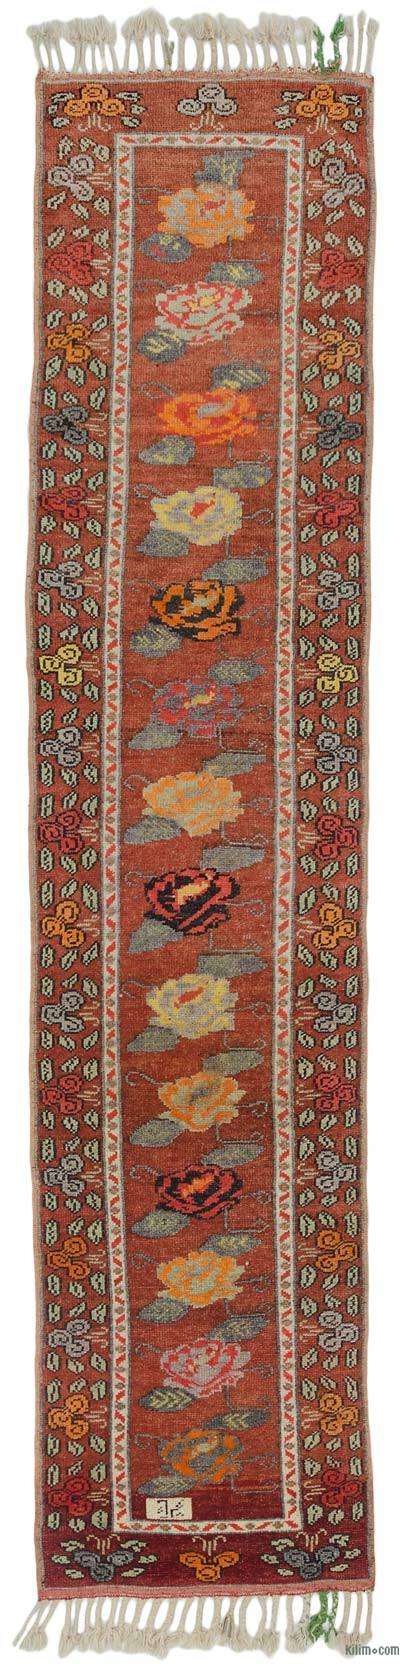 "Multicolor Vintage Turkish Runner Rug - 2' 11"" x 13' 1"" (35 in. x 157 in.)"